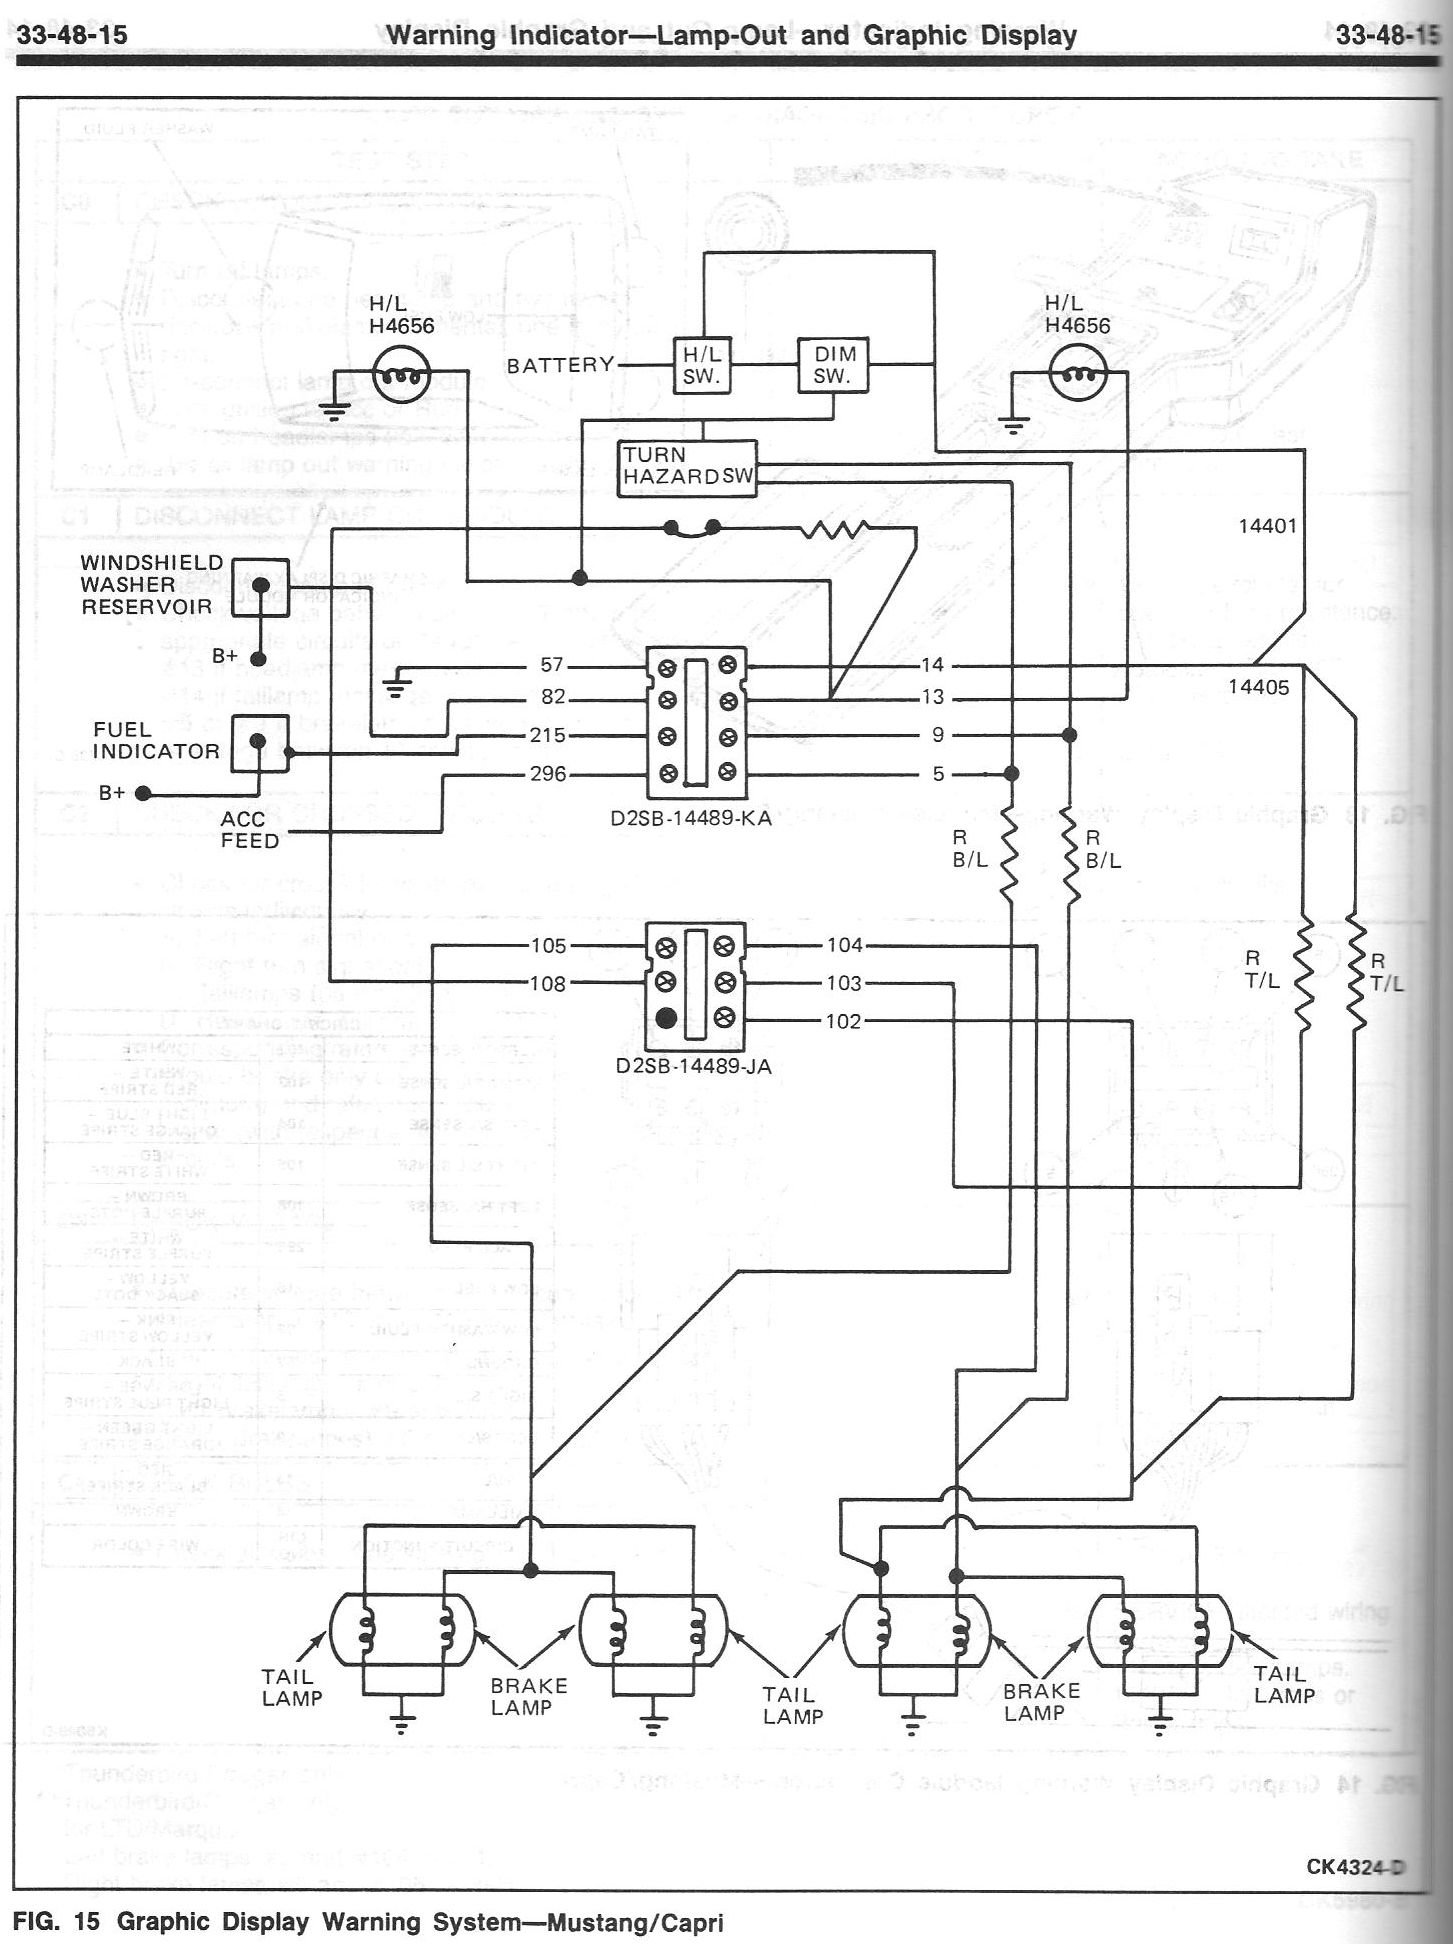 ford ranger wiring diagram to 98 mustangs